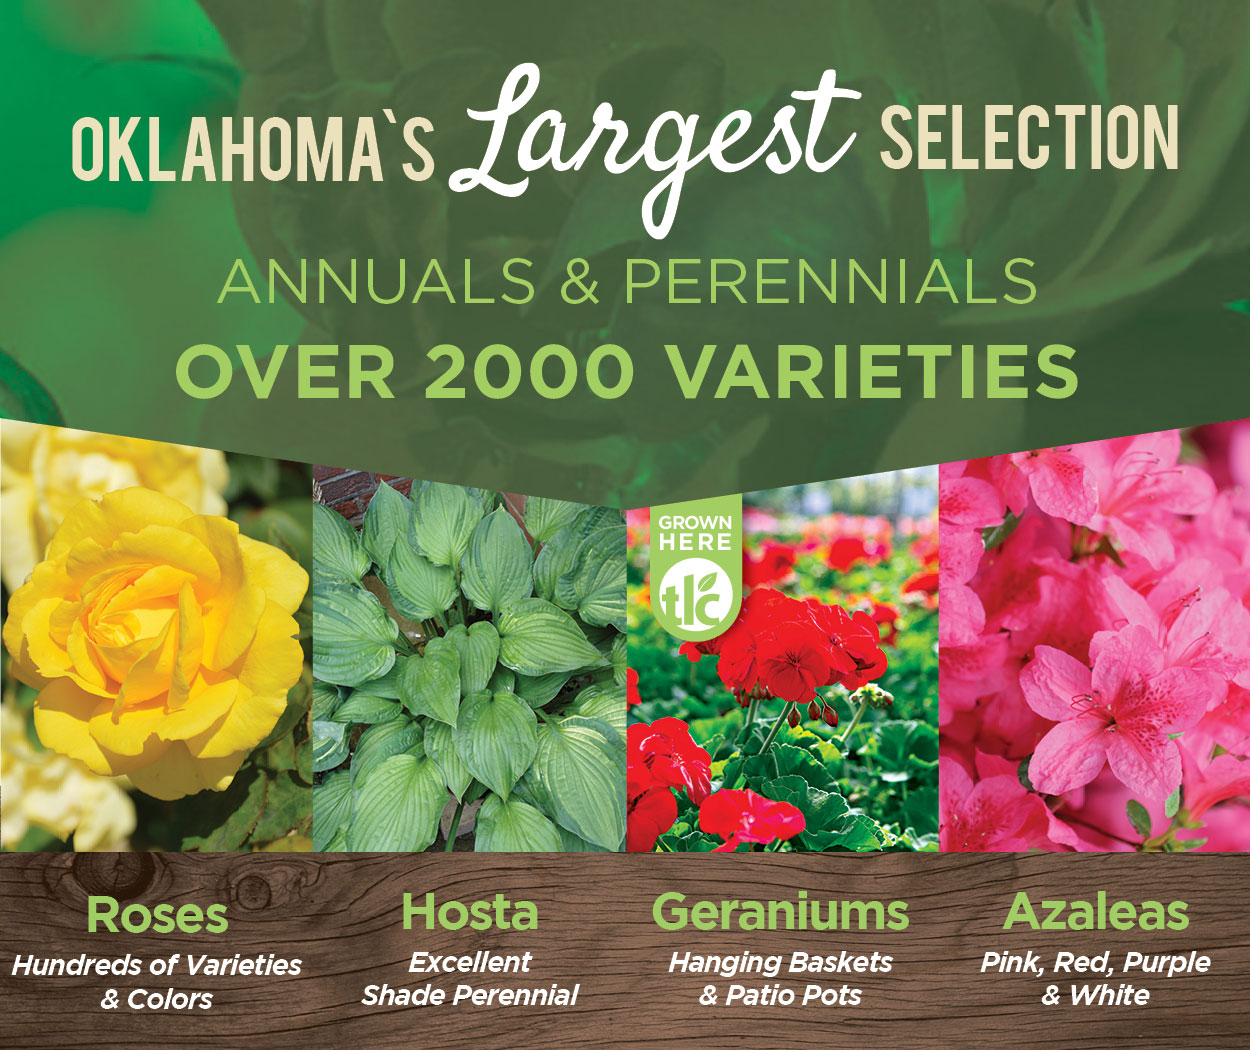 Oklahoma's Largest Selection of Annuals and Perennials